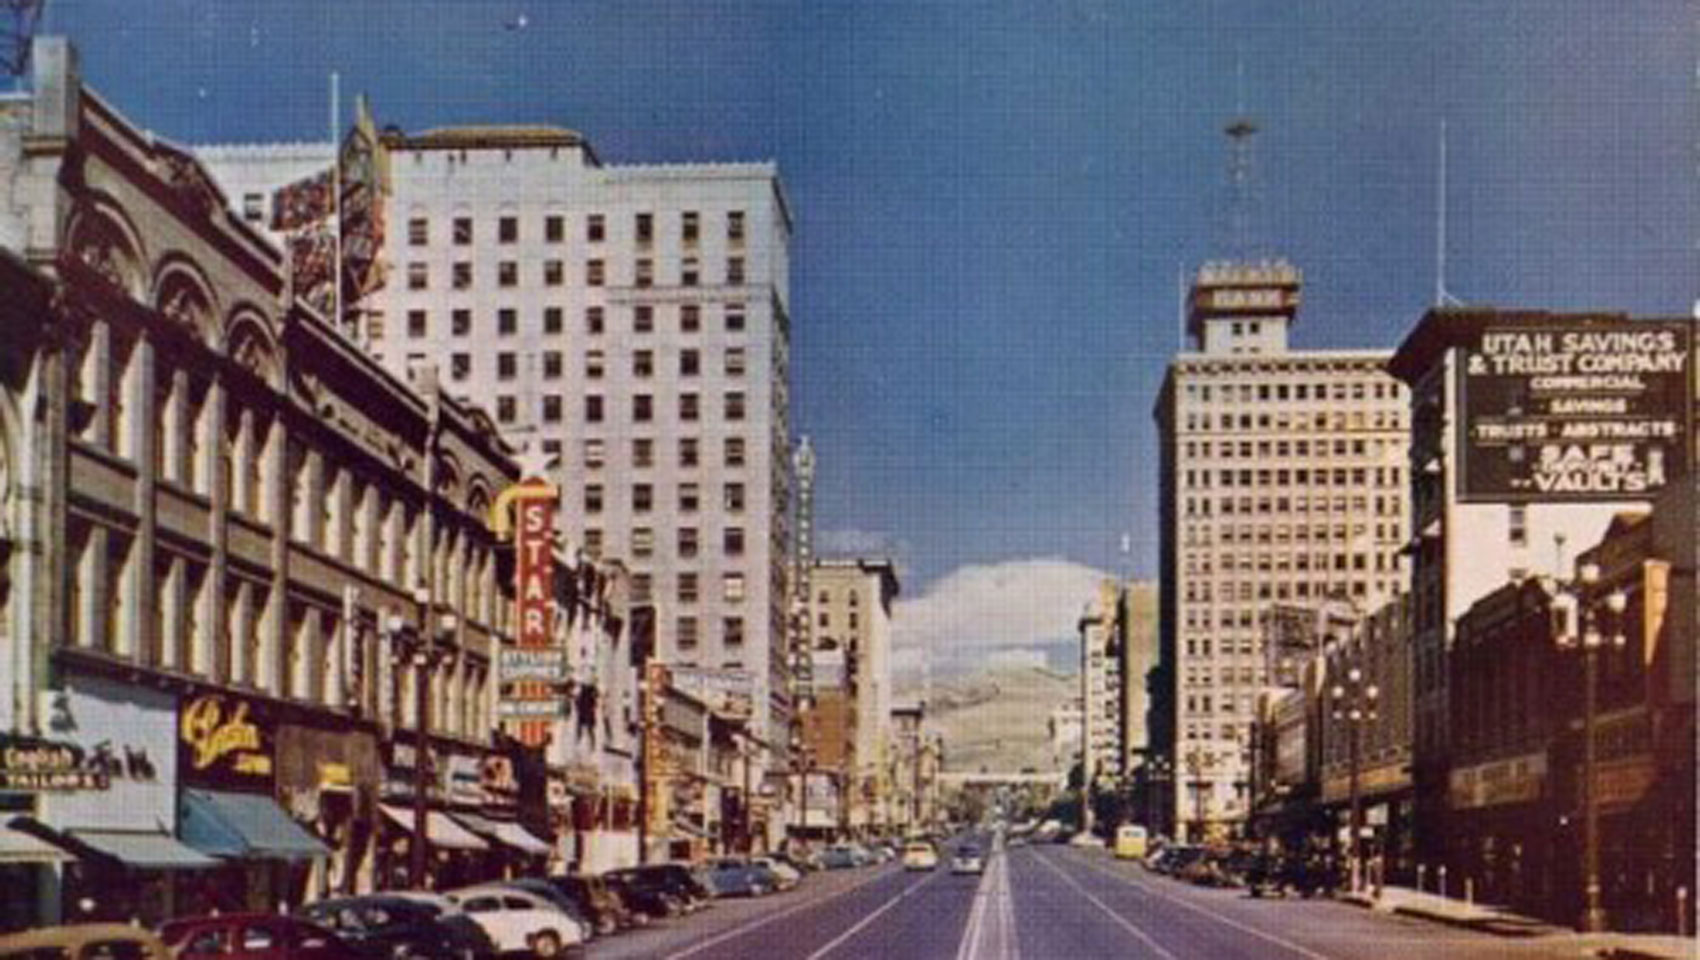 Historical Shot of Downtown Salt Lake City